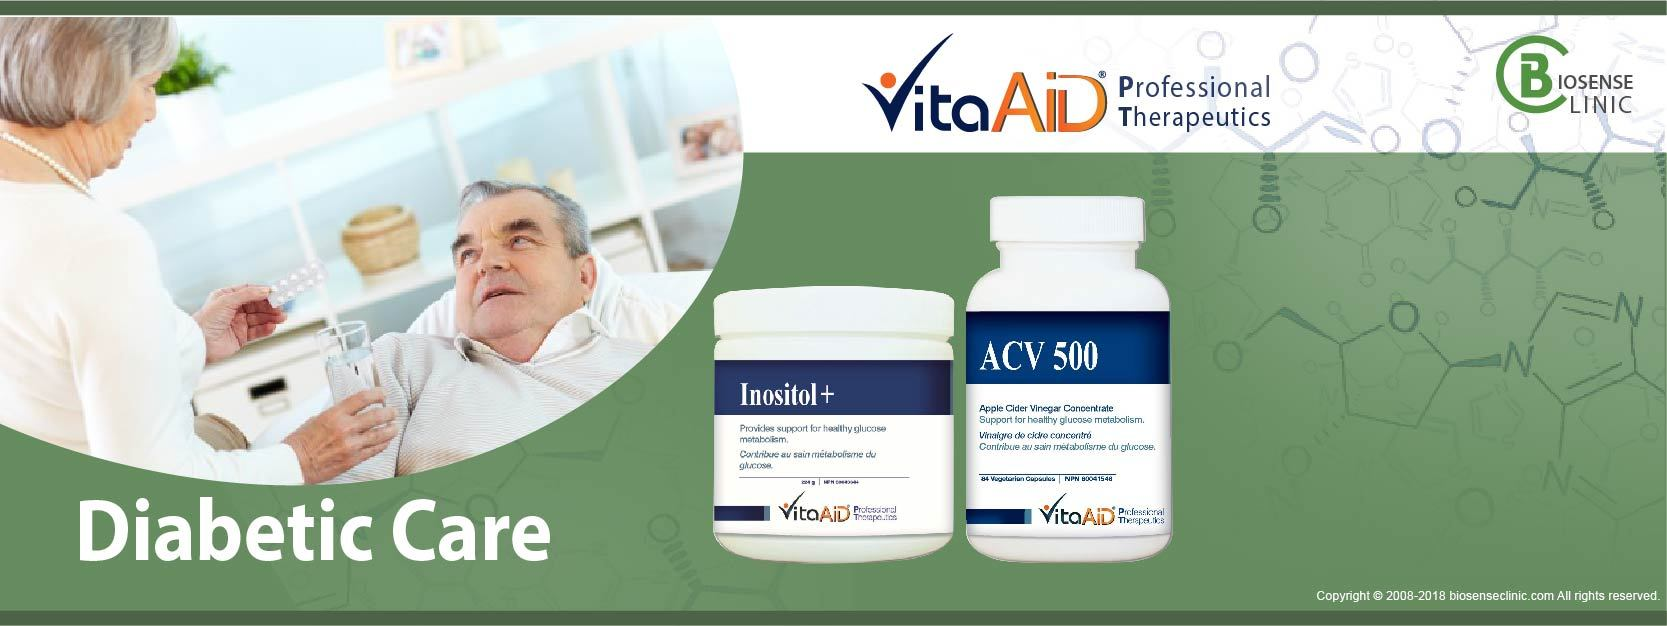 VitaAid category banner diabetic care